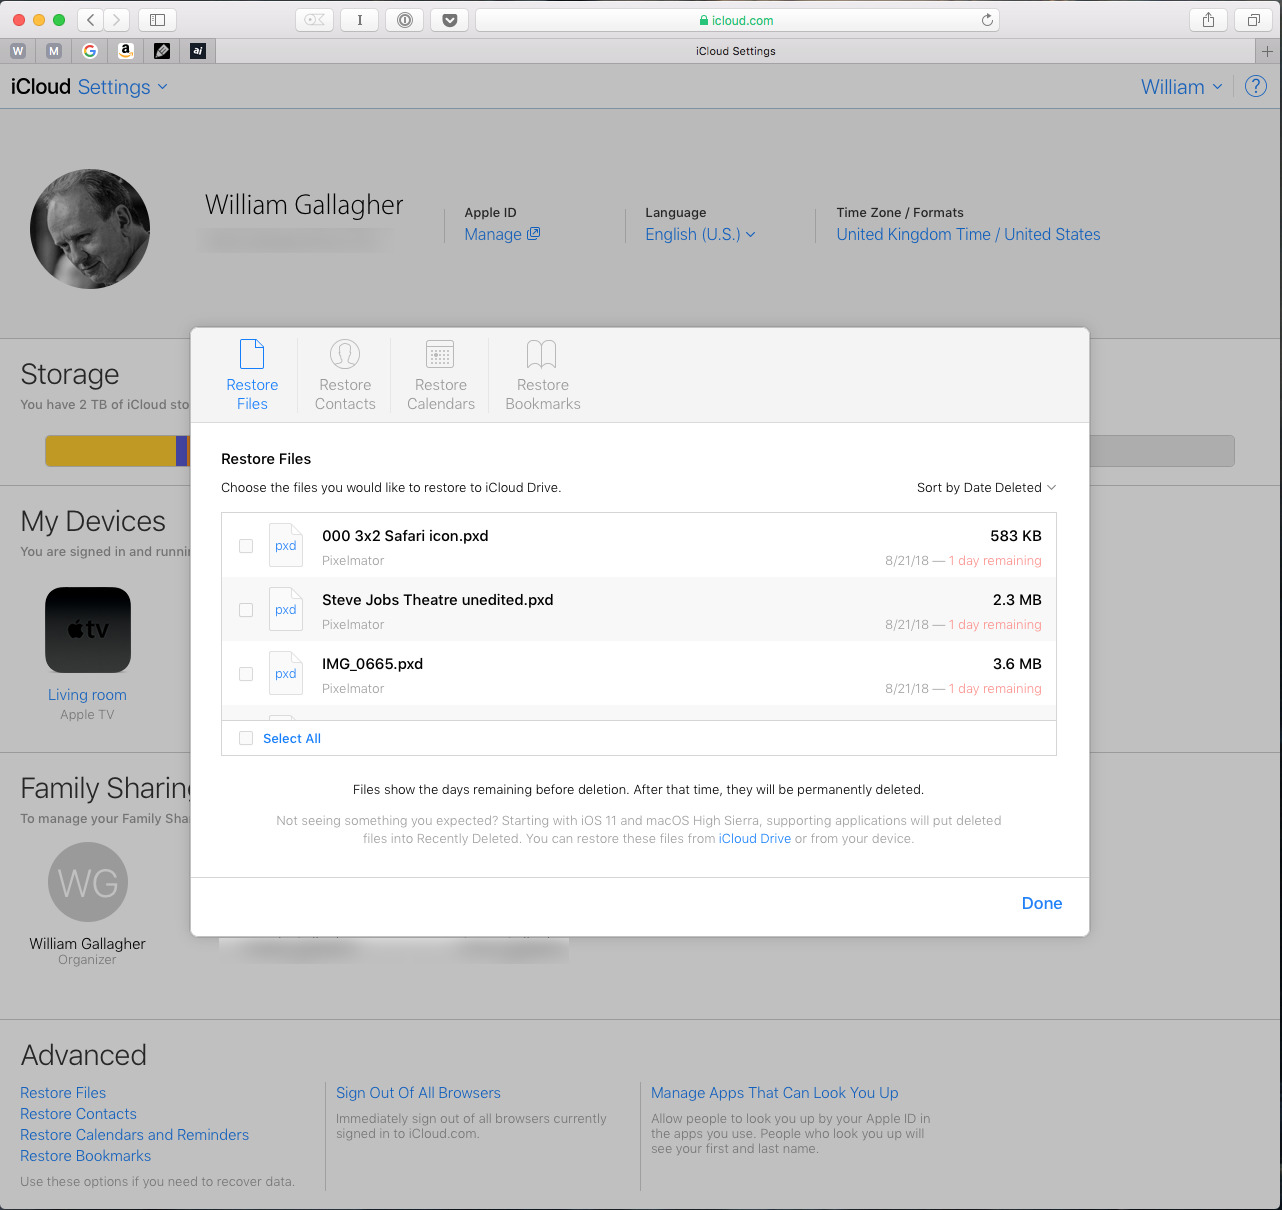 Sorting and searching the list of deleted but recoverable iCloud files